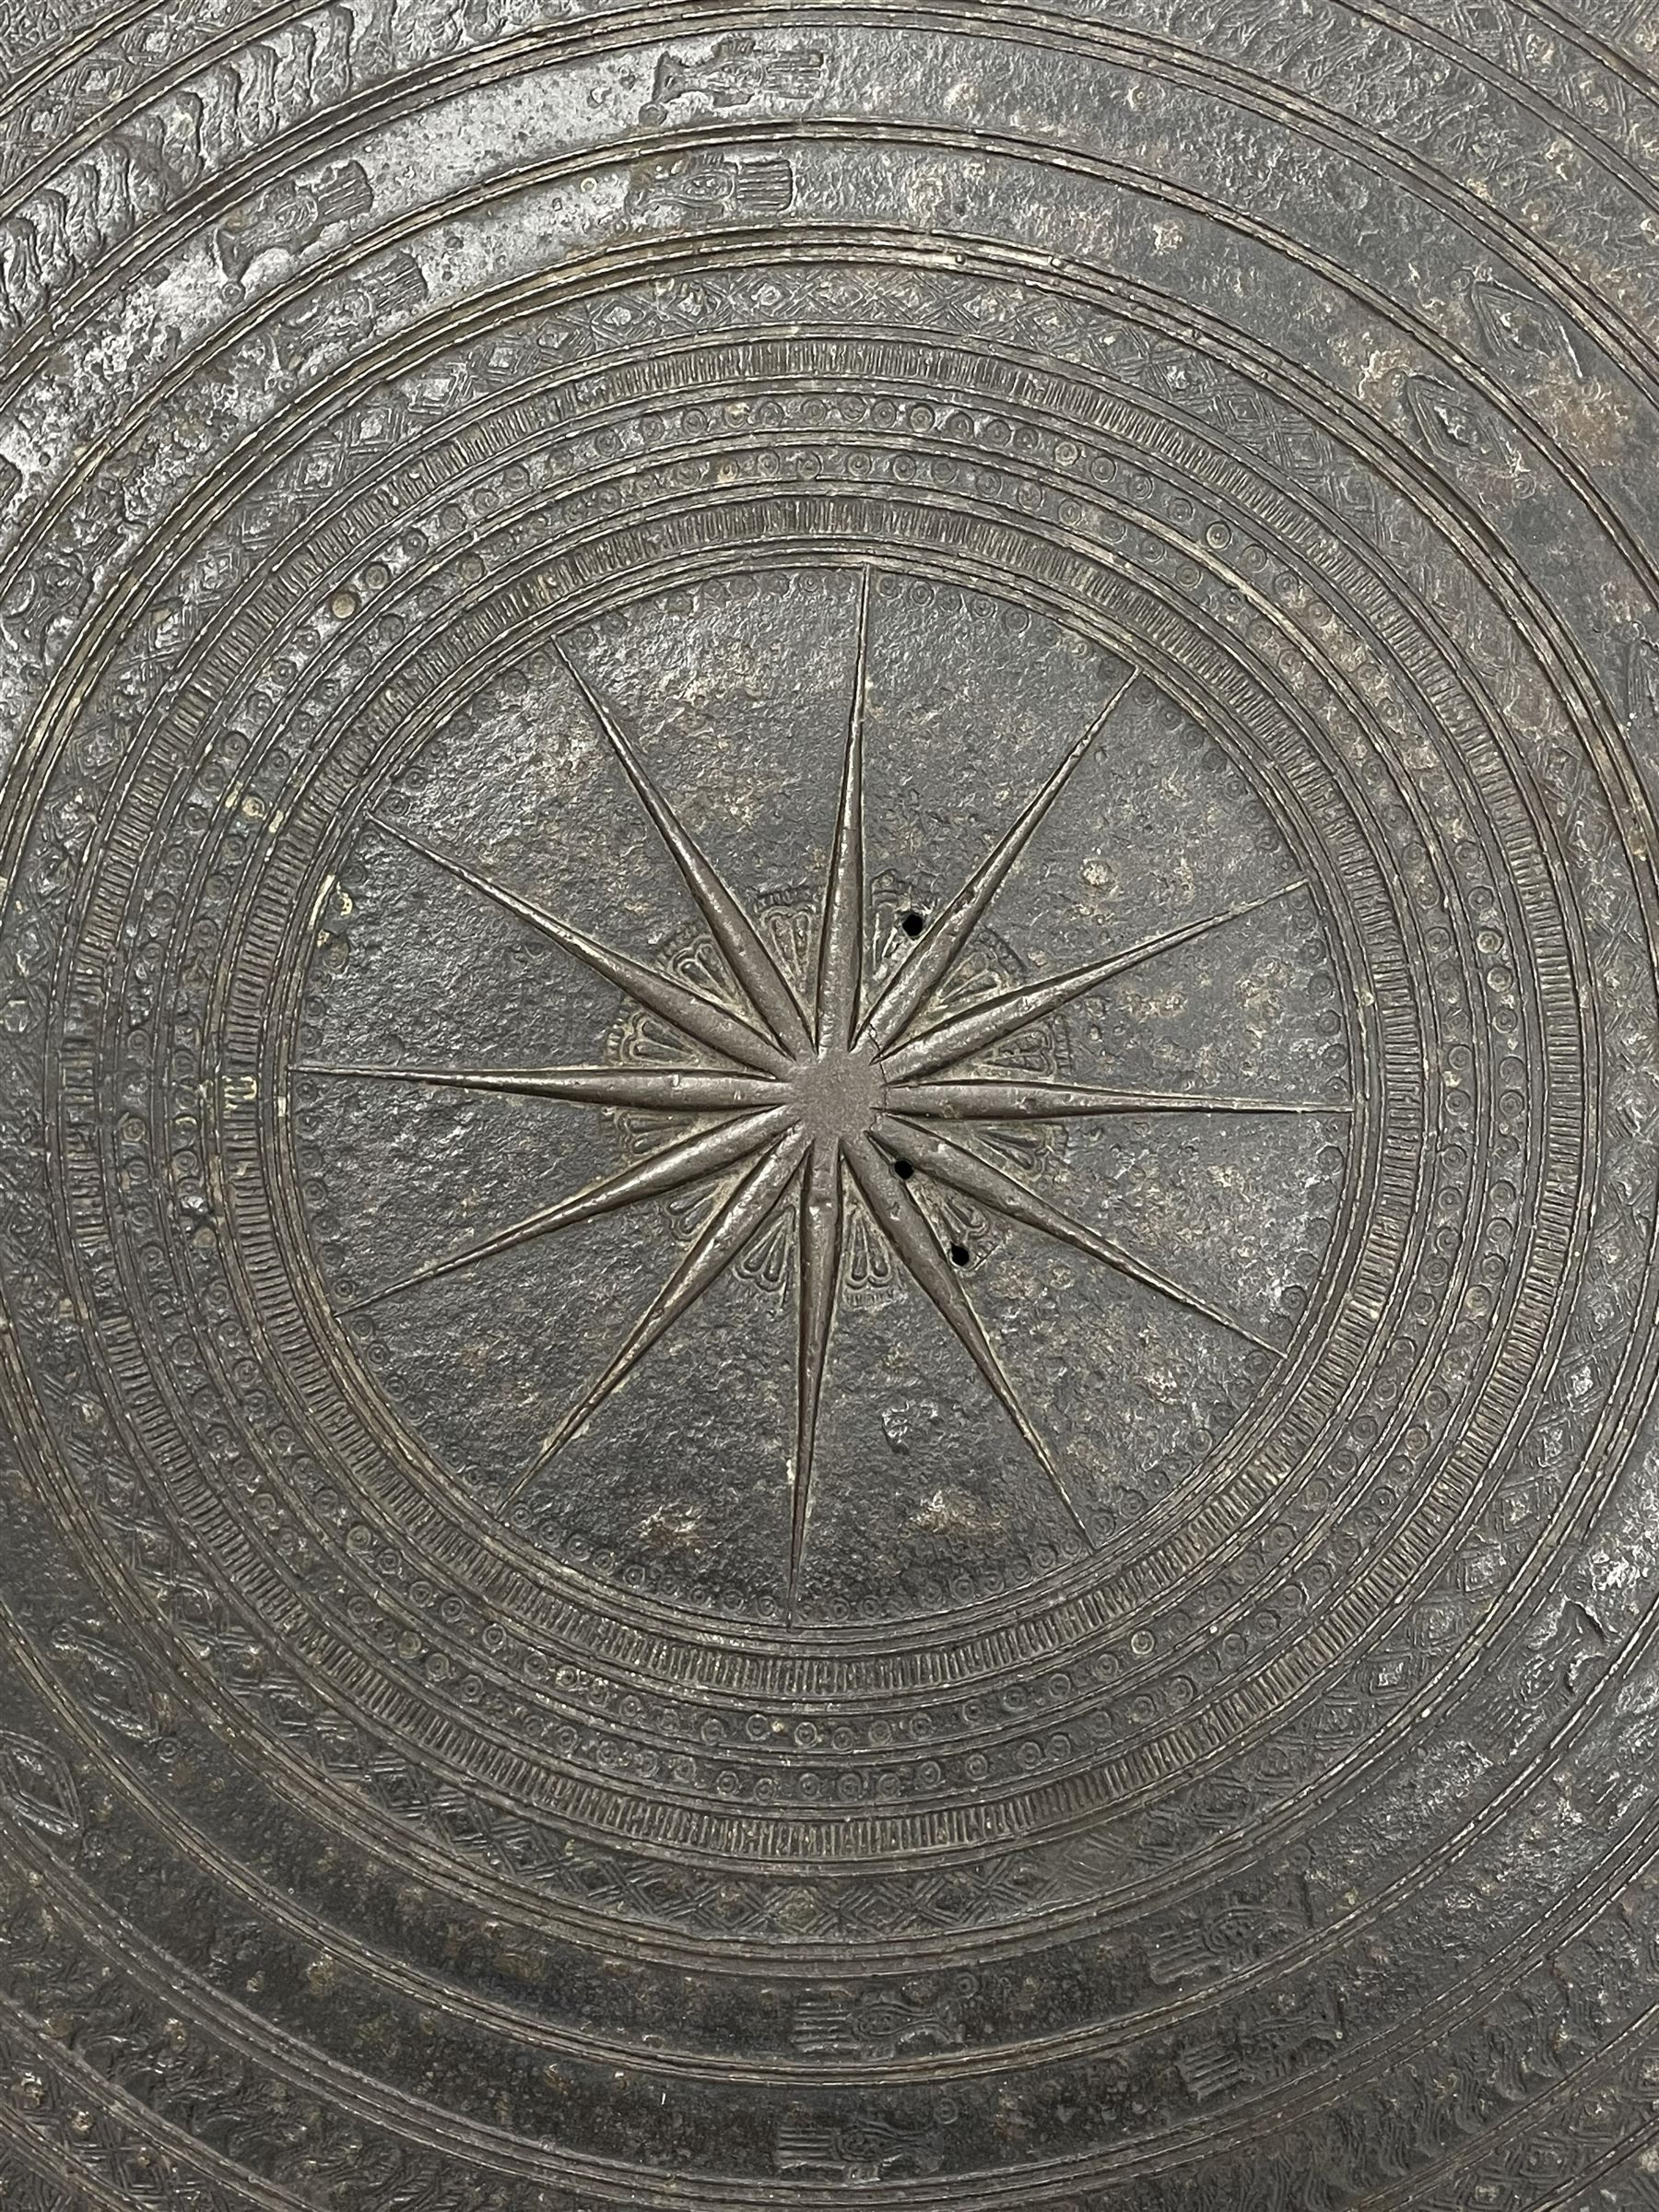 Dong Son style Southeast Asian bronze rain drum - Image 7 of 8